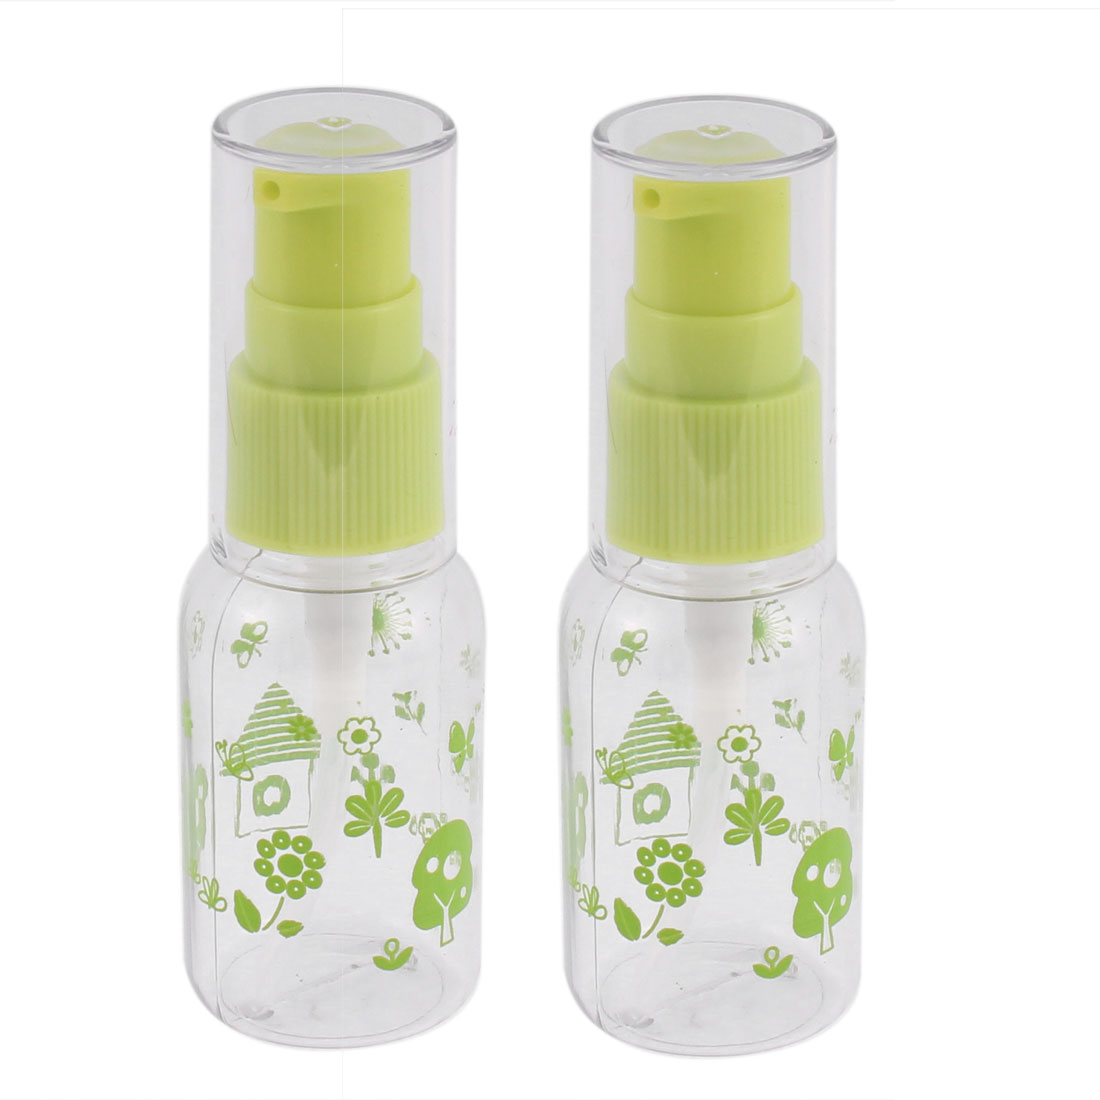 Cosmetic Perfume Liquid Container Spray Bottles 30ml Lime Clear 2pcs